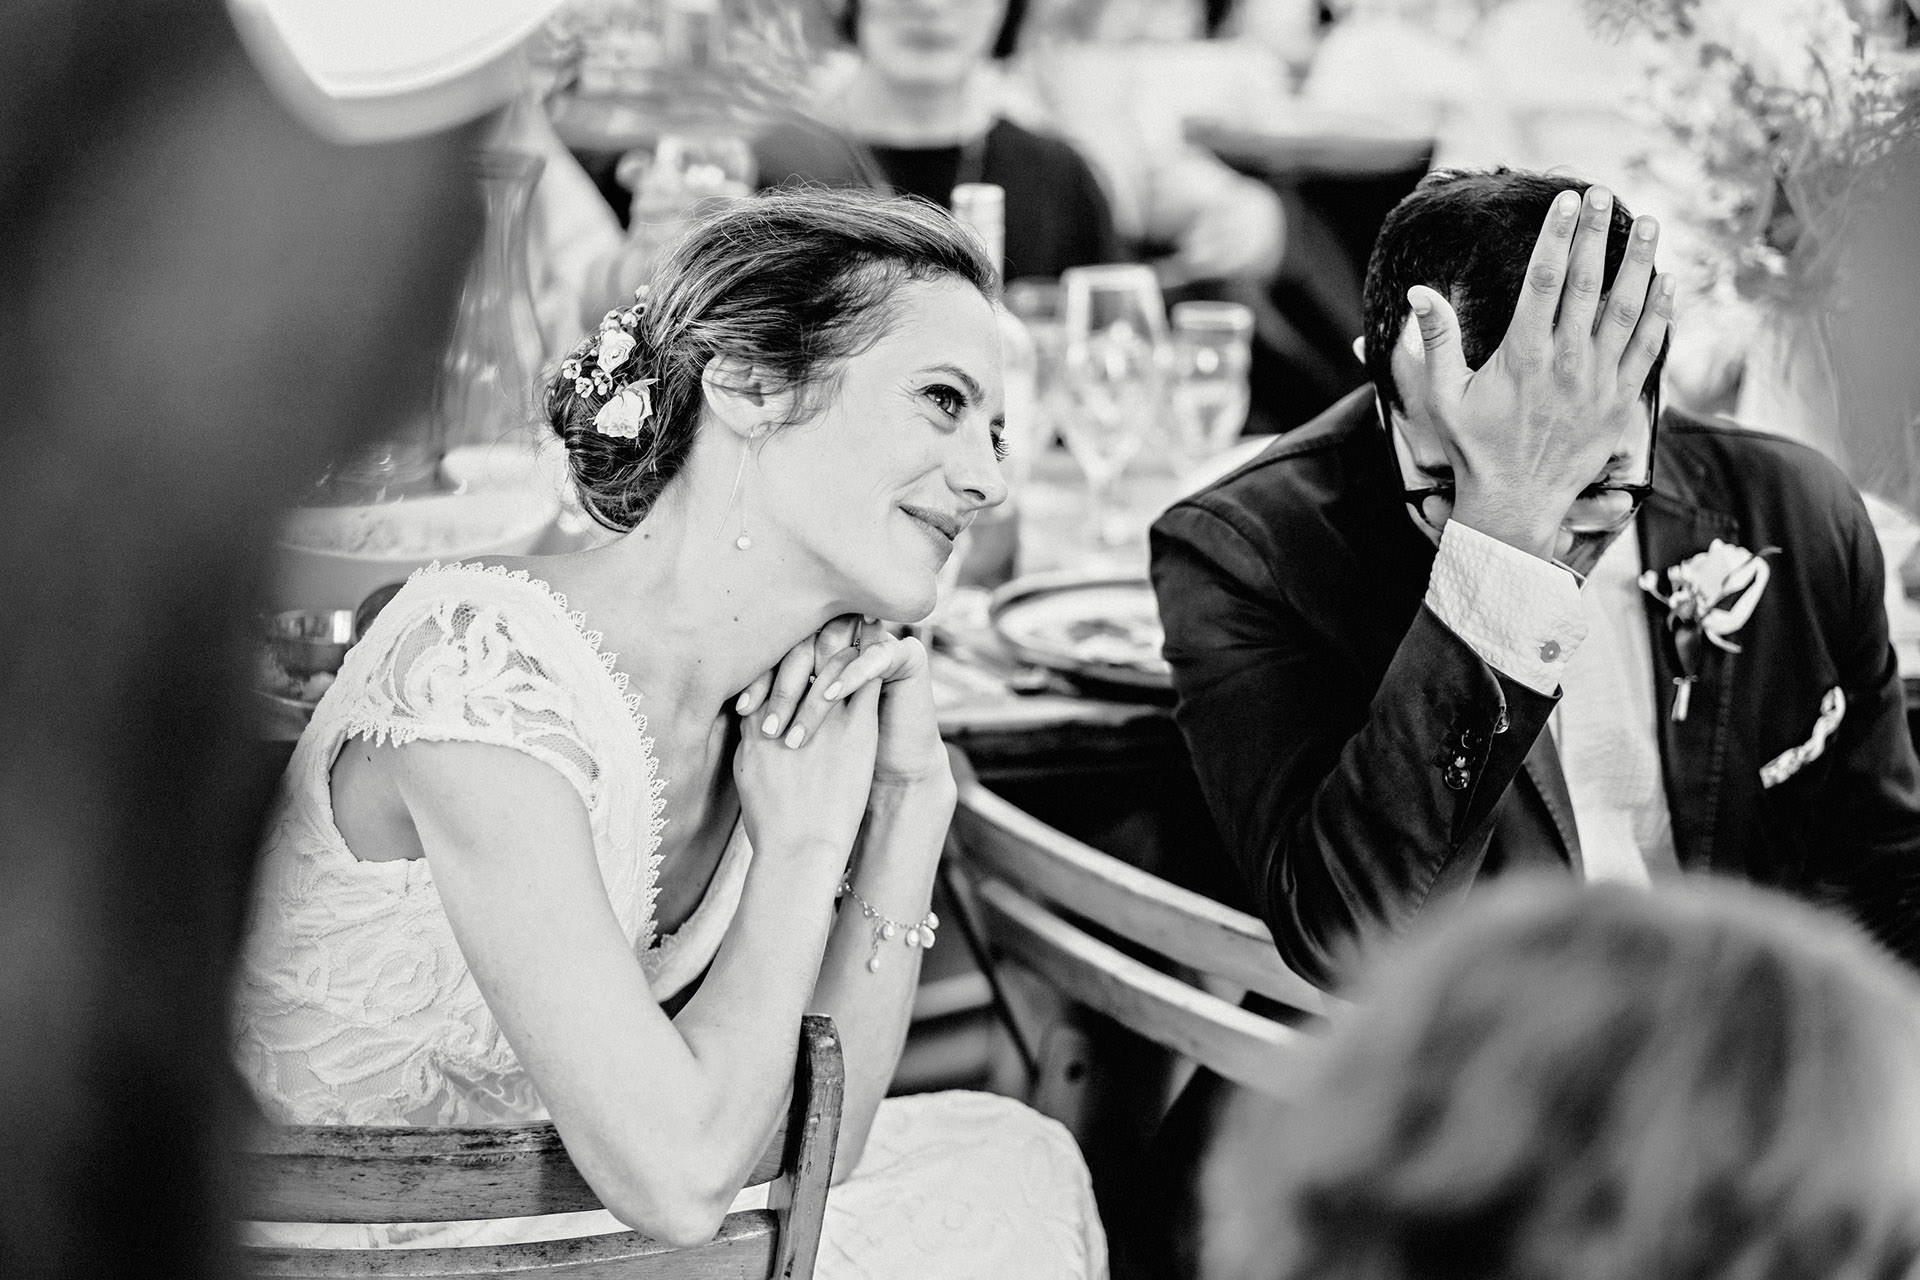 reactions, photojournalism, wedding speeches